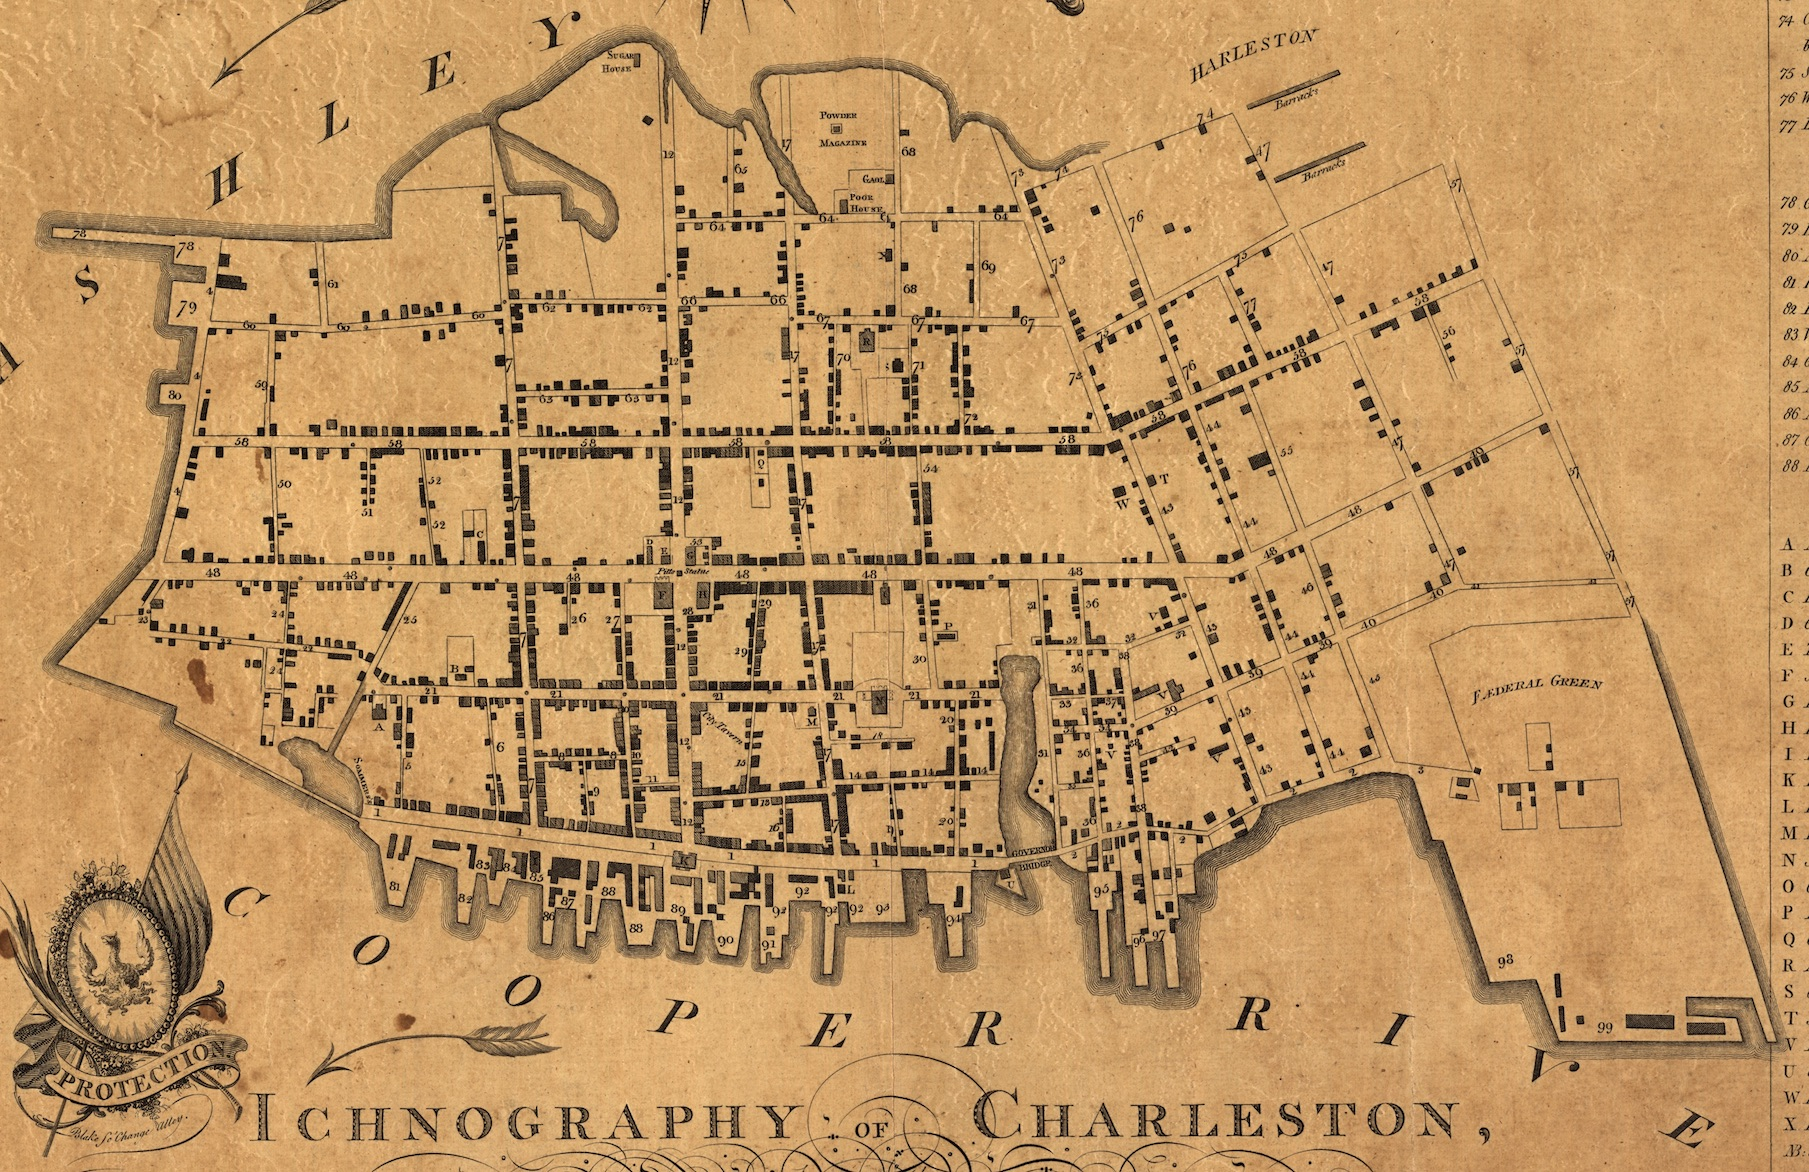 A 1790 map from the Library of Congress collection showing demilitarized Charleston.